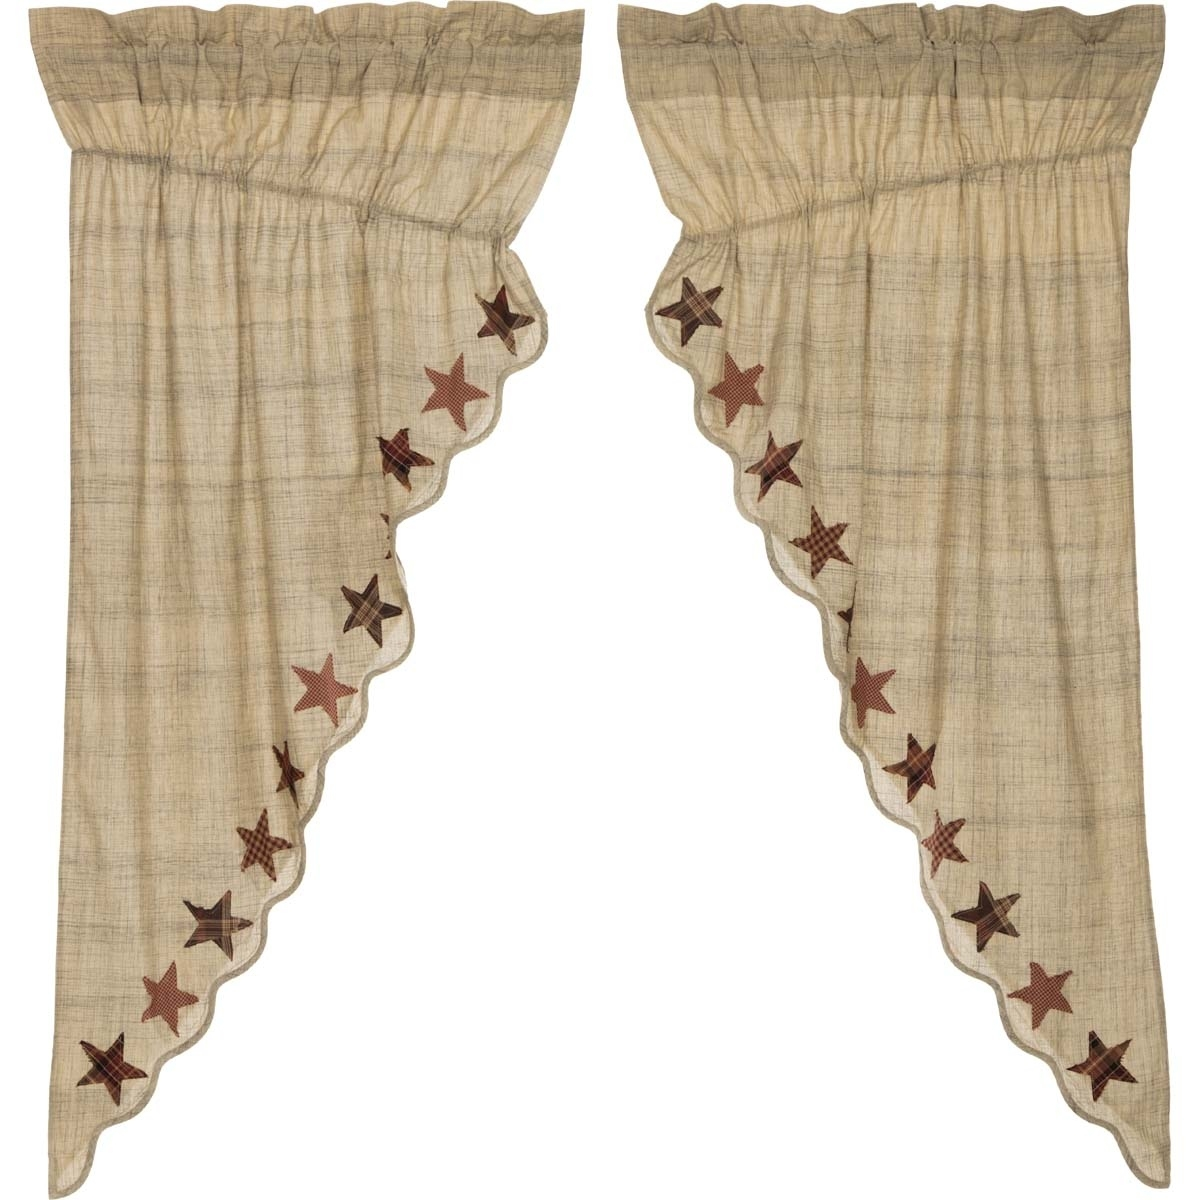 tan classic country curtains country star rod pocket cotton with regard to Country Curtains